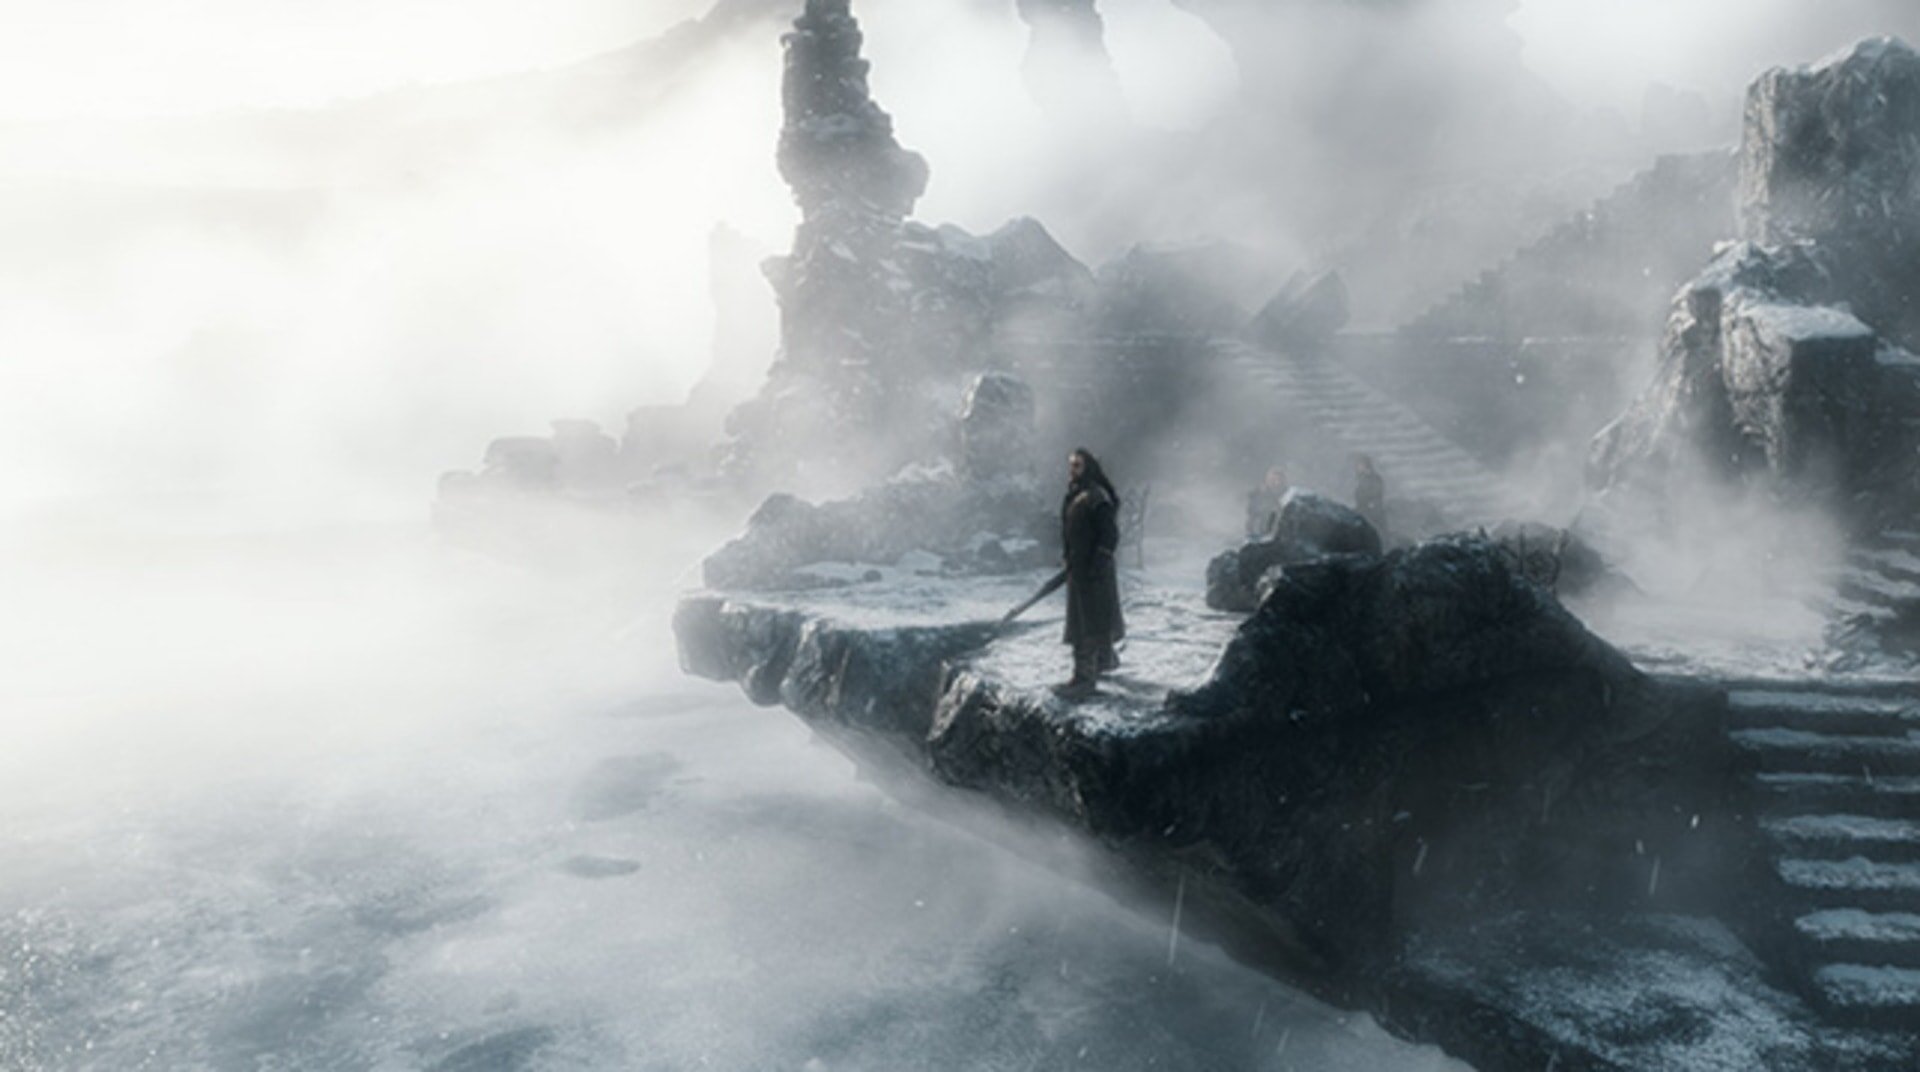 The Hobbit: The Battle of the Five Armies - Image 30